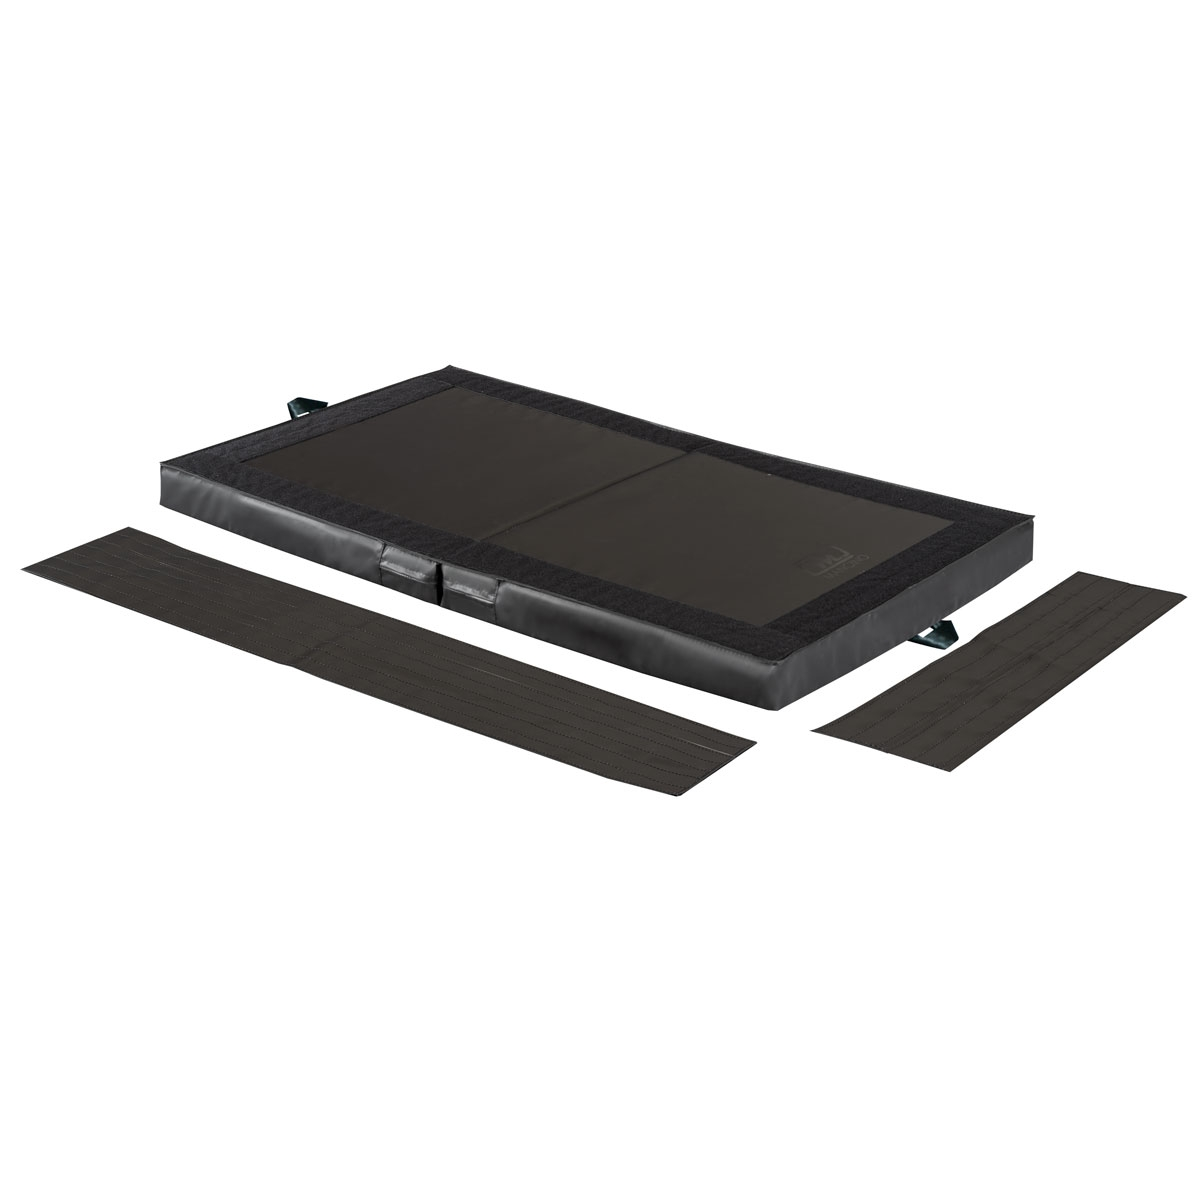 black stunt suicase mat with attaching velcro strips